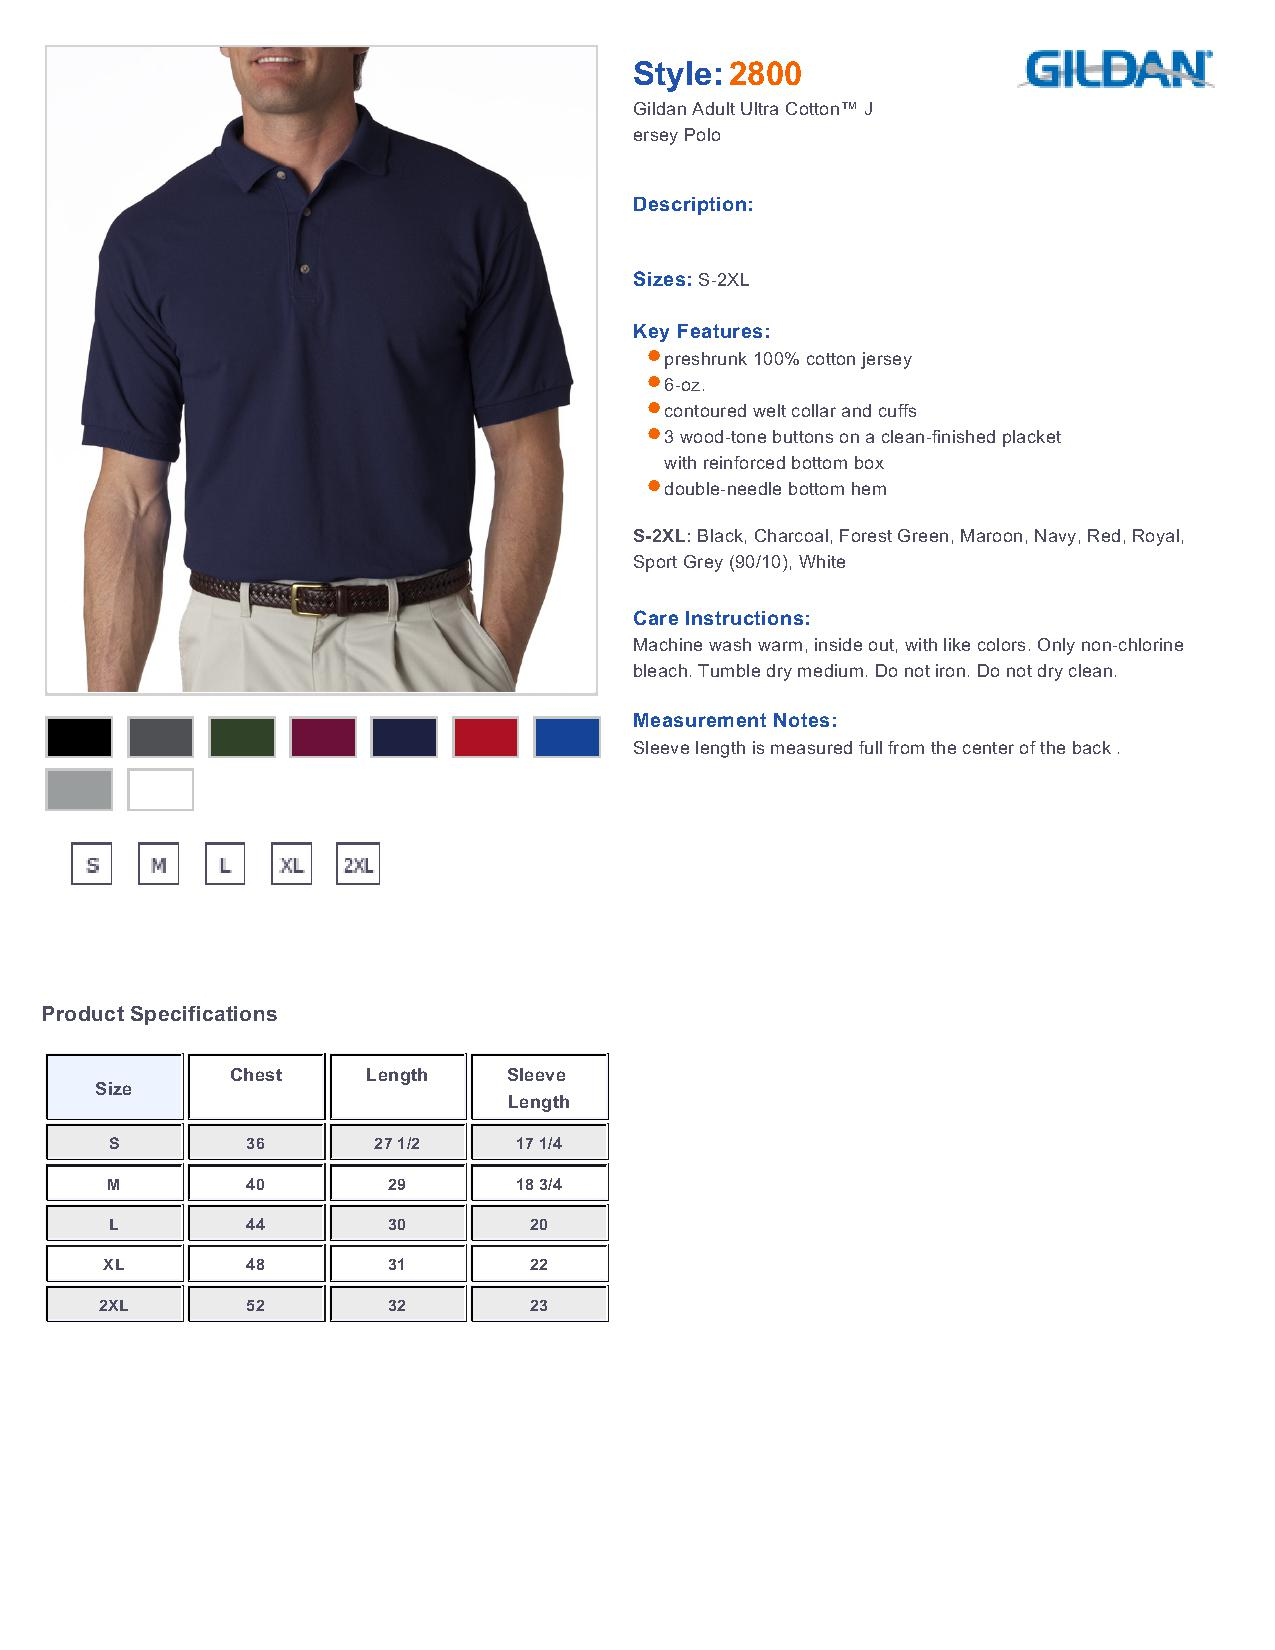 Gildan 2800 Ultra Cotton Jersey Sport Shirt 731 Mens Sport Shirts